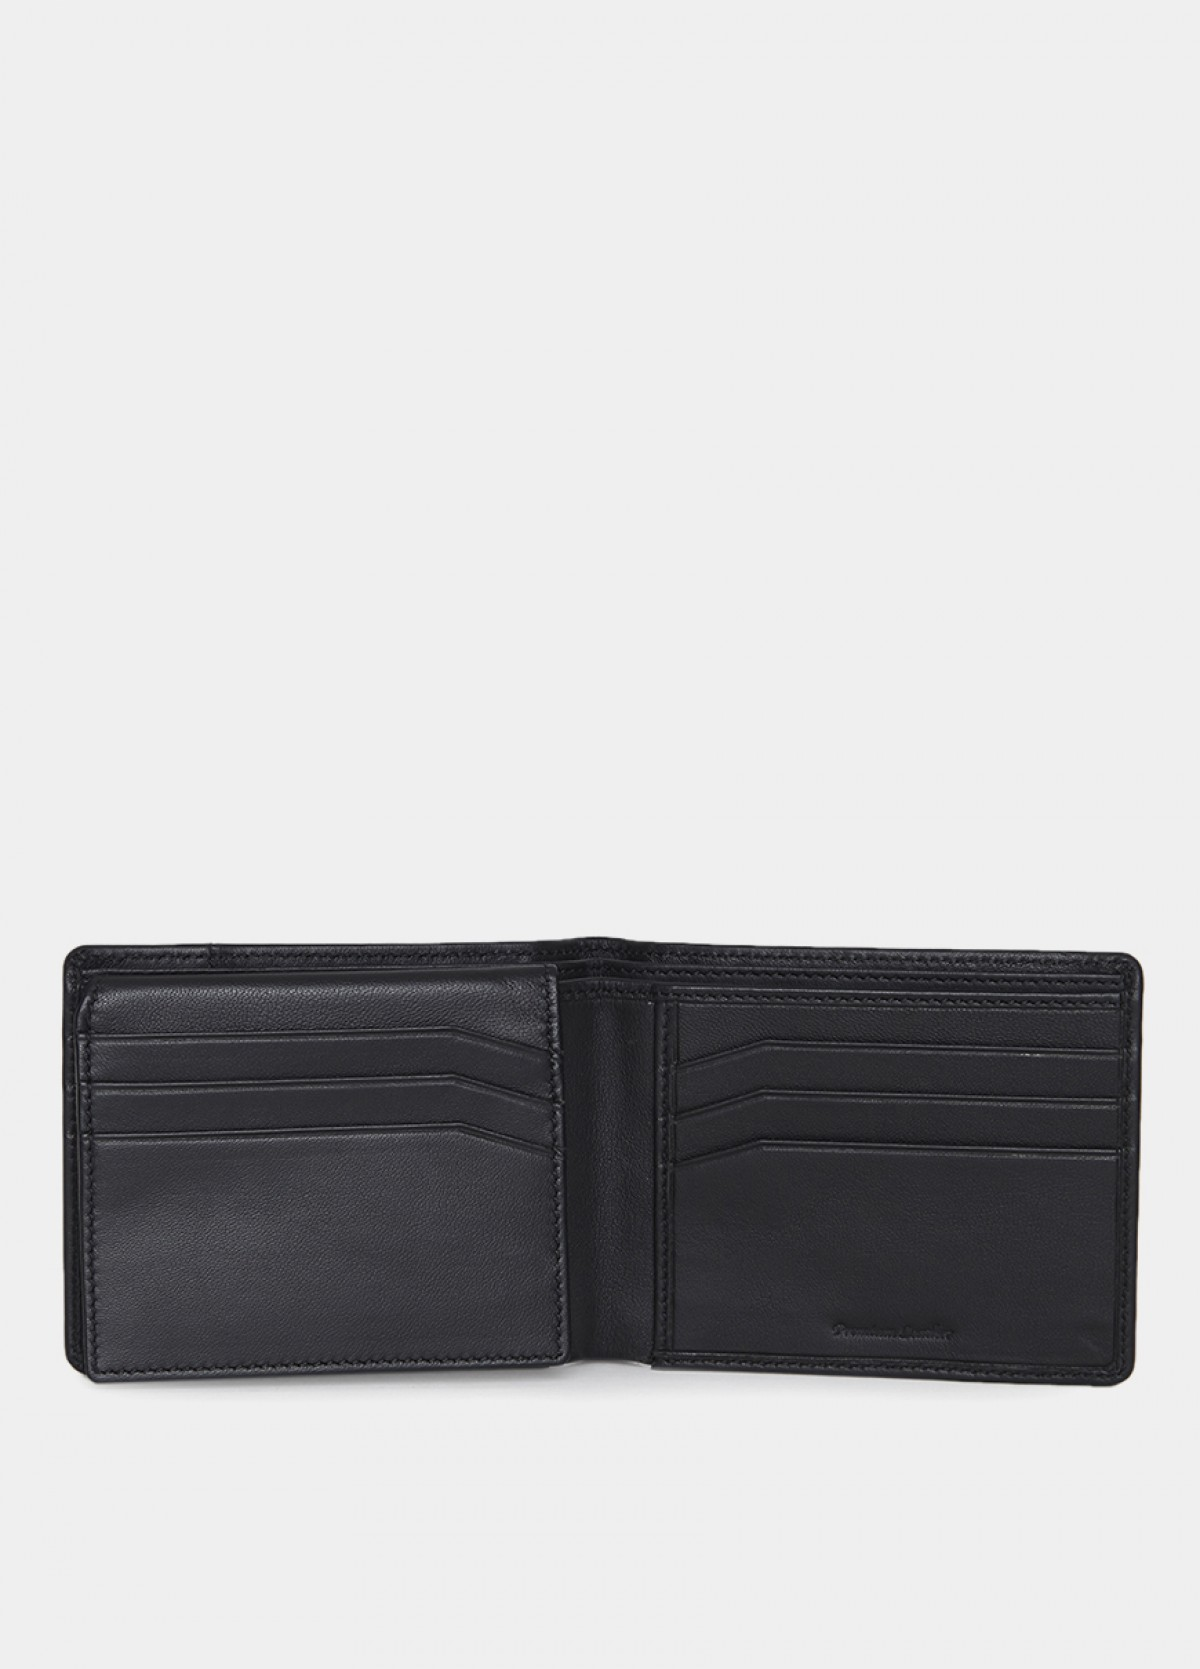 The Him & The City Men'S Bi Fold Wallet With Id Flap Black